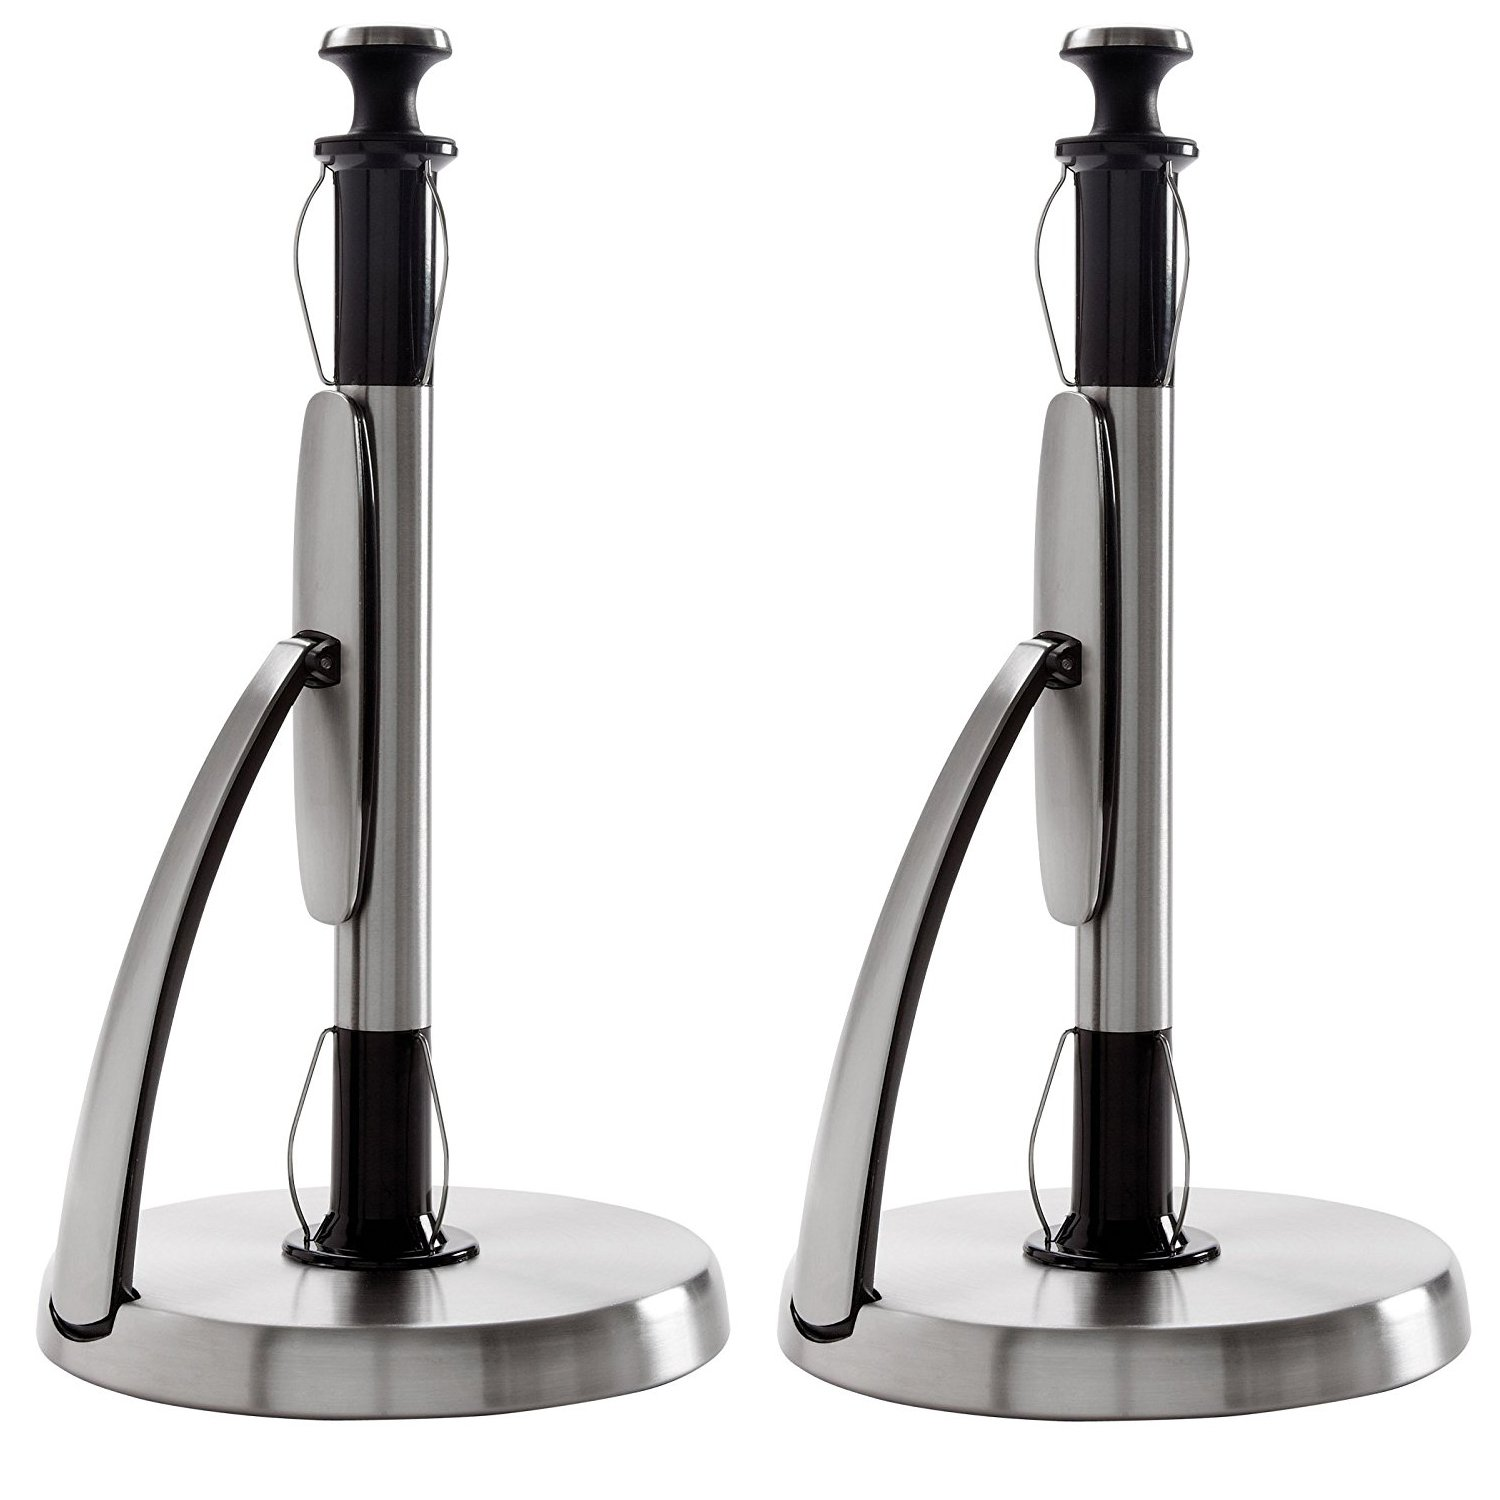 OXO Good Grips SimplyTear Standing Paper Towel Holder, Brushed Stainless Steel (2 Pack) by OXO